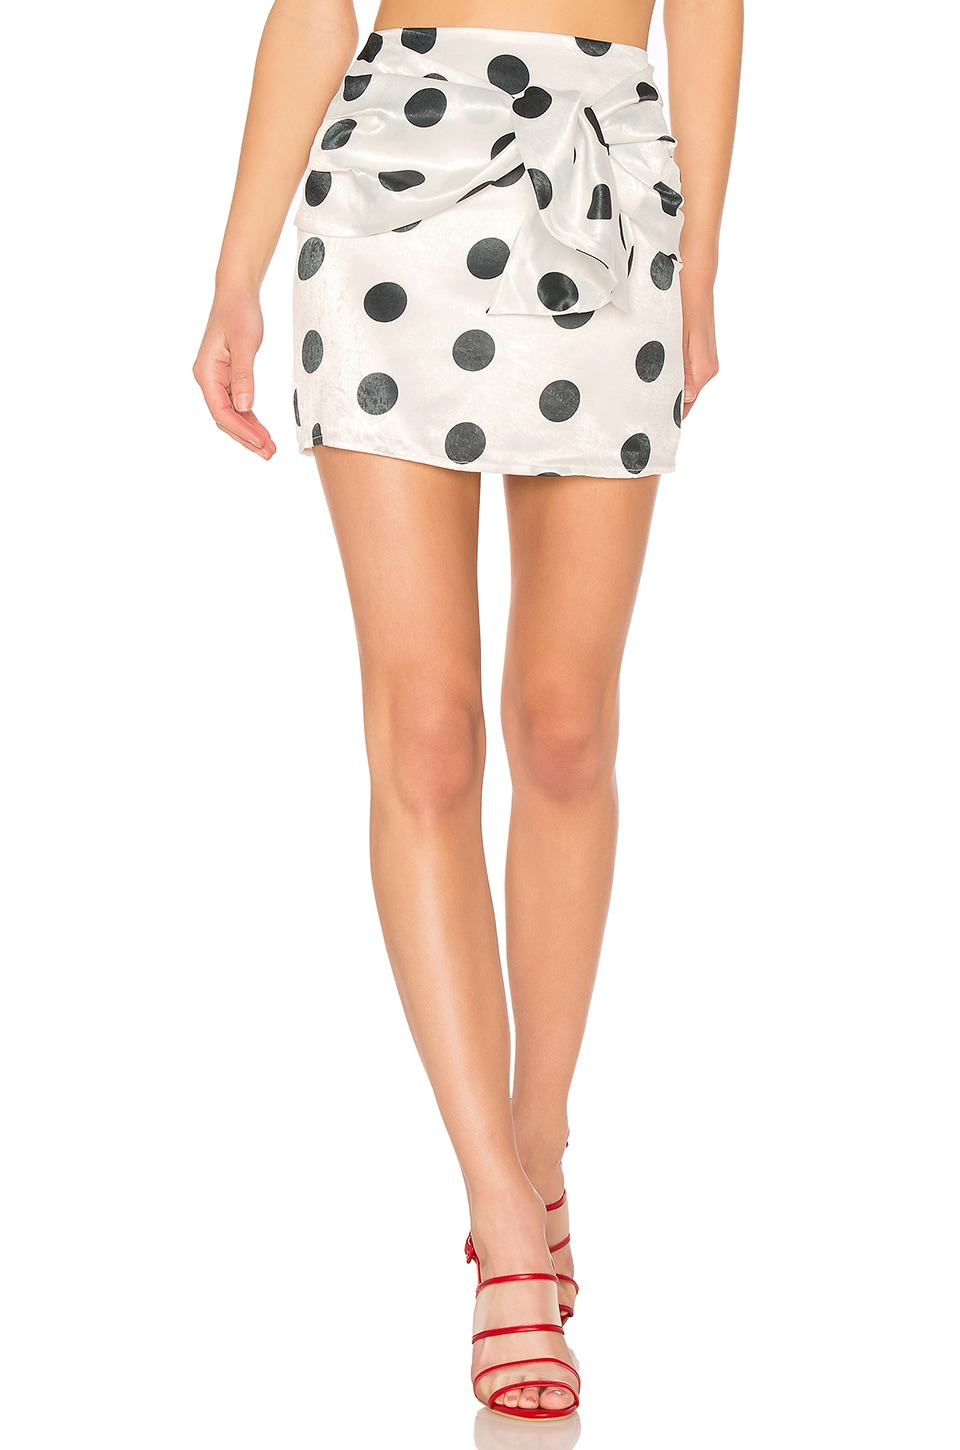 House of Harlow 1960 x REVOLVE Nicholas Skirt in Dot Print